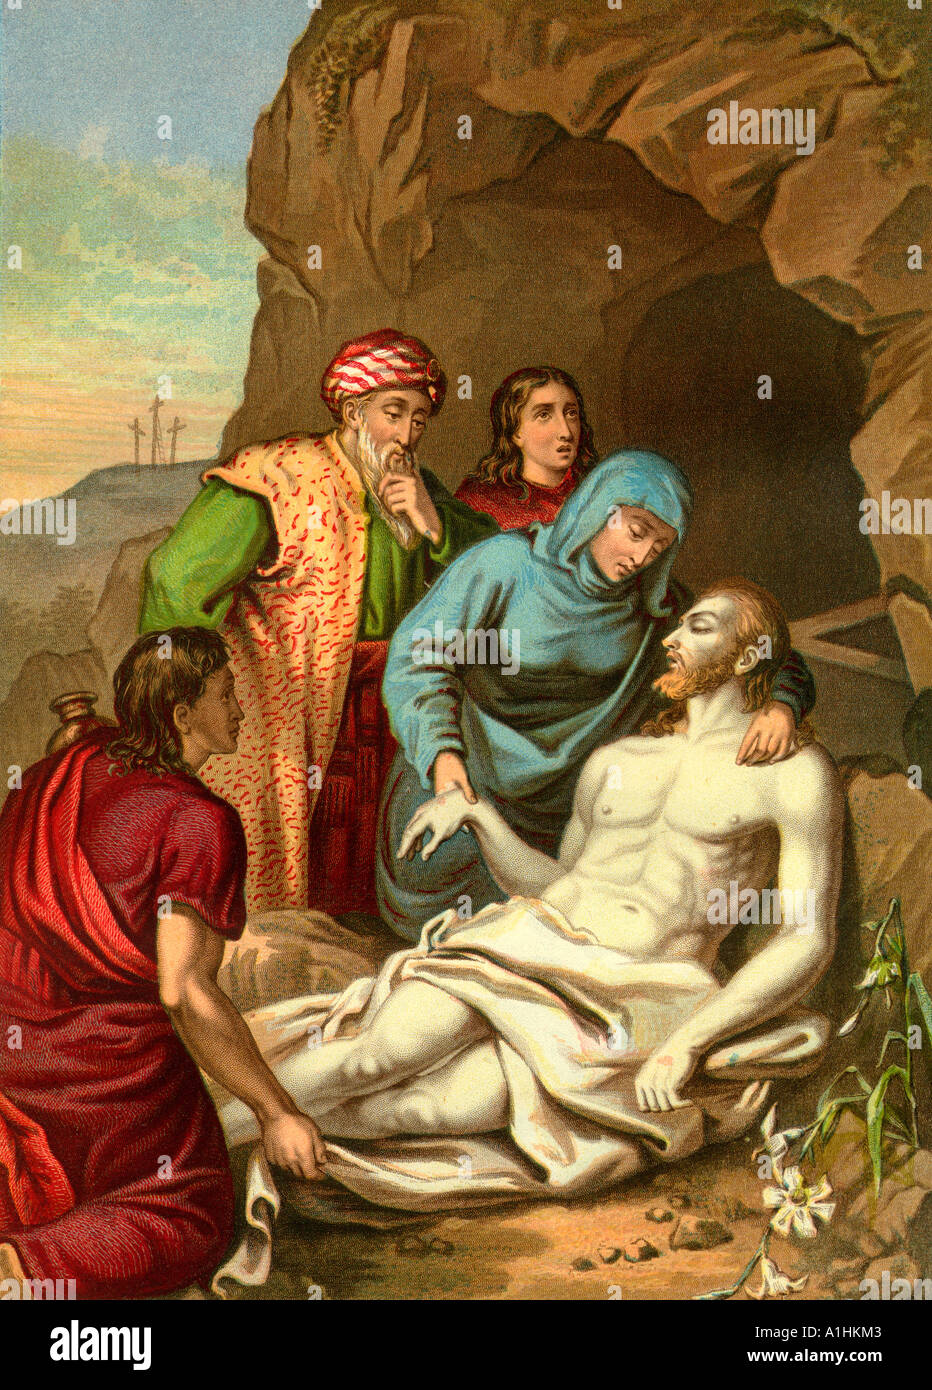 Christ s Entombment From an edition of John Browns Self Interpreting Bible first published in 1778 - Stock Image